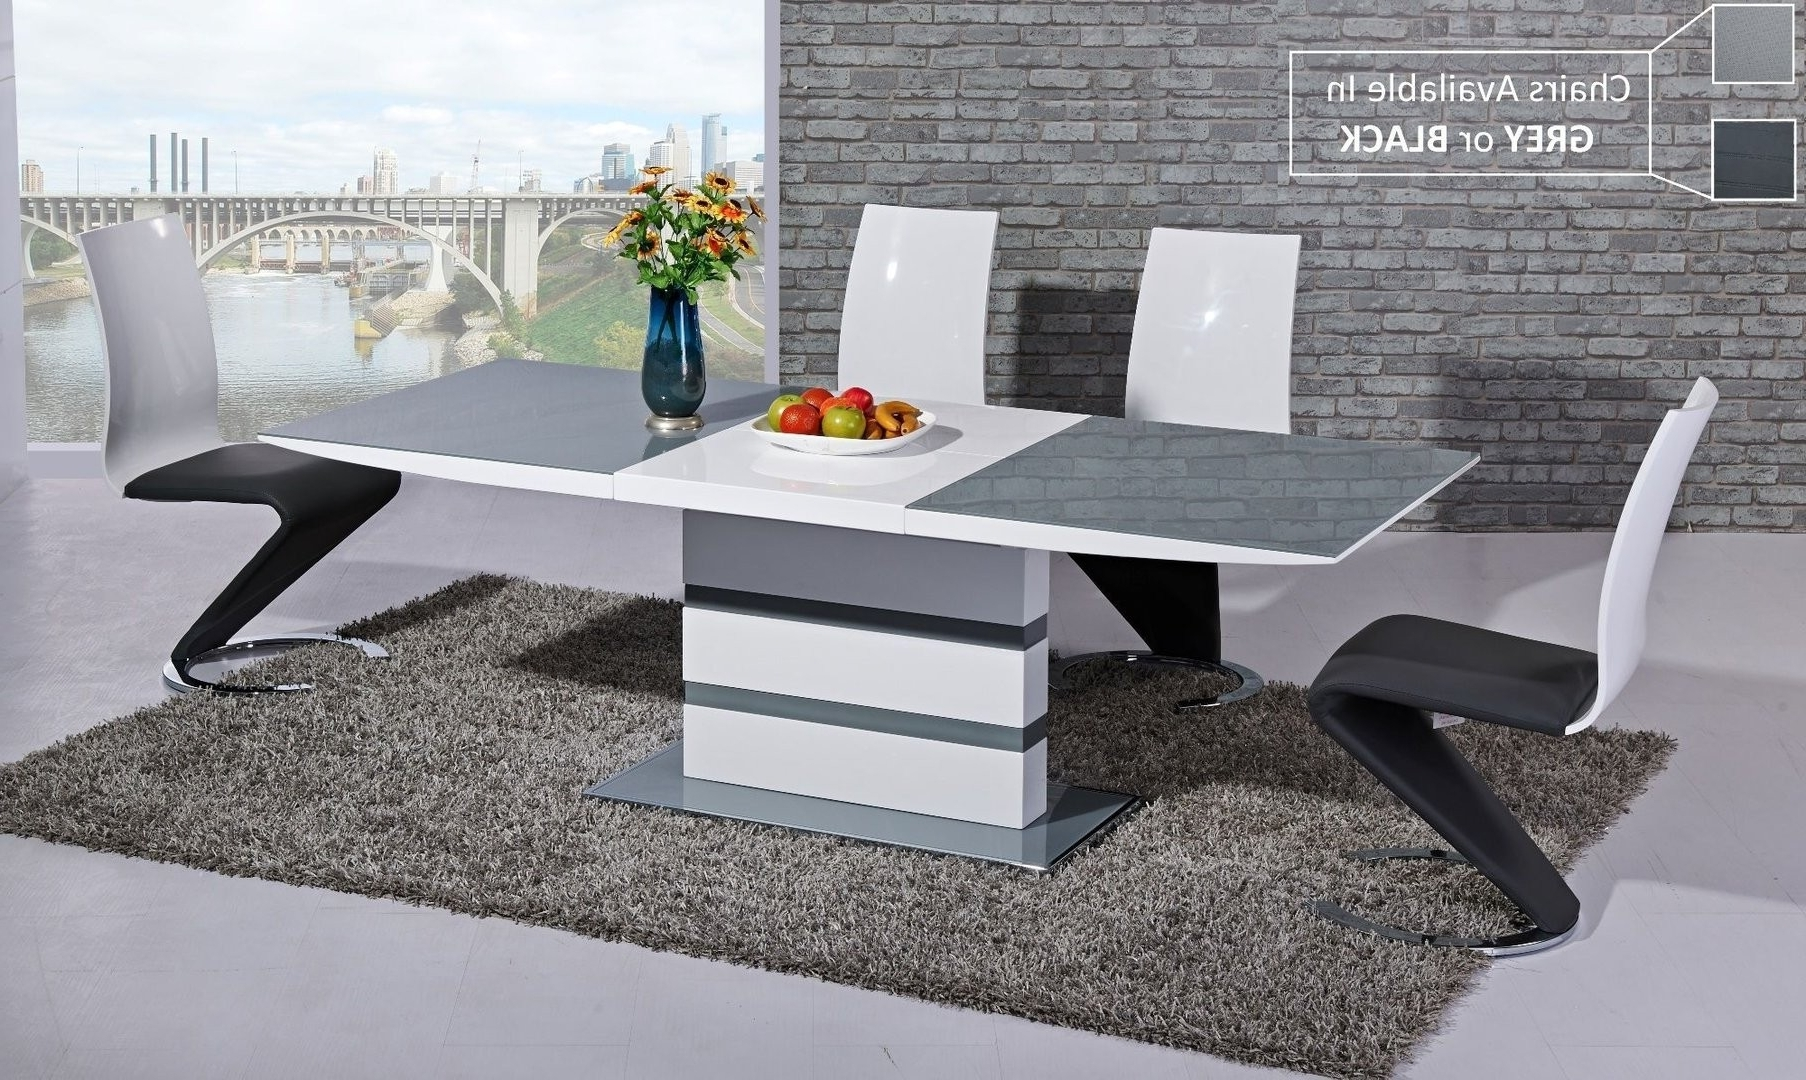 High Gloss Extendable Dining Tables Throughout Current White High Gloss Extending Dining Table Inspirational High Gloss (View 14 of 25)